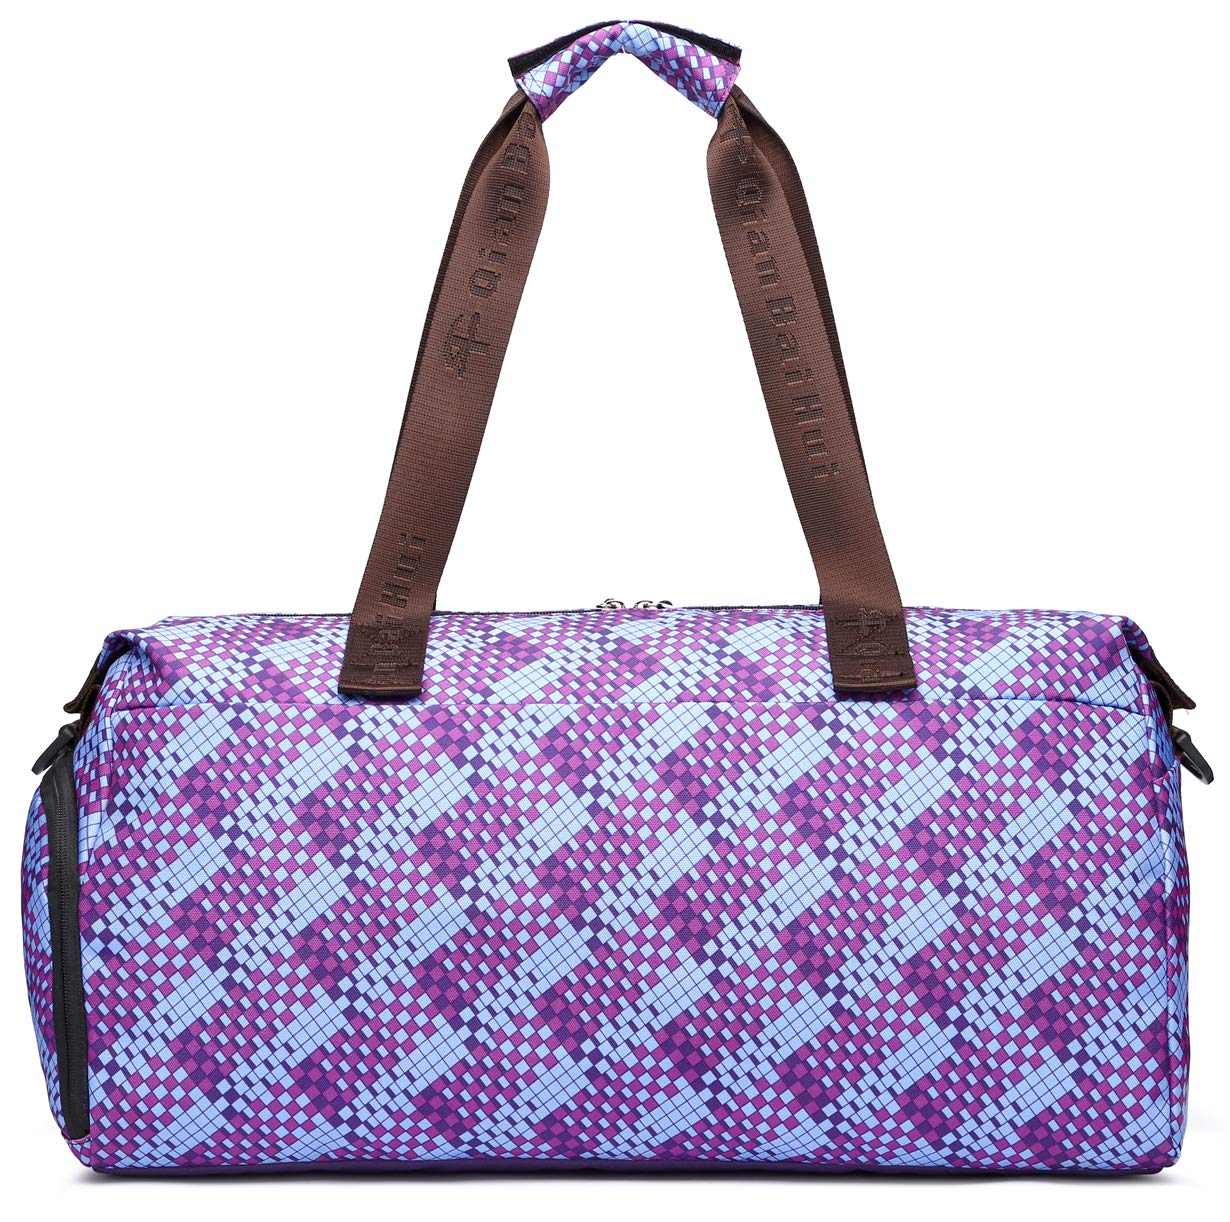 Malirona Gym Bag Lightweight Duffel for Women Sports Duffels Bag with Shoes Compartment 17 Inch Brown prismatic lattice